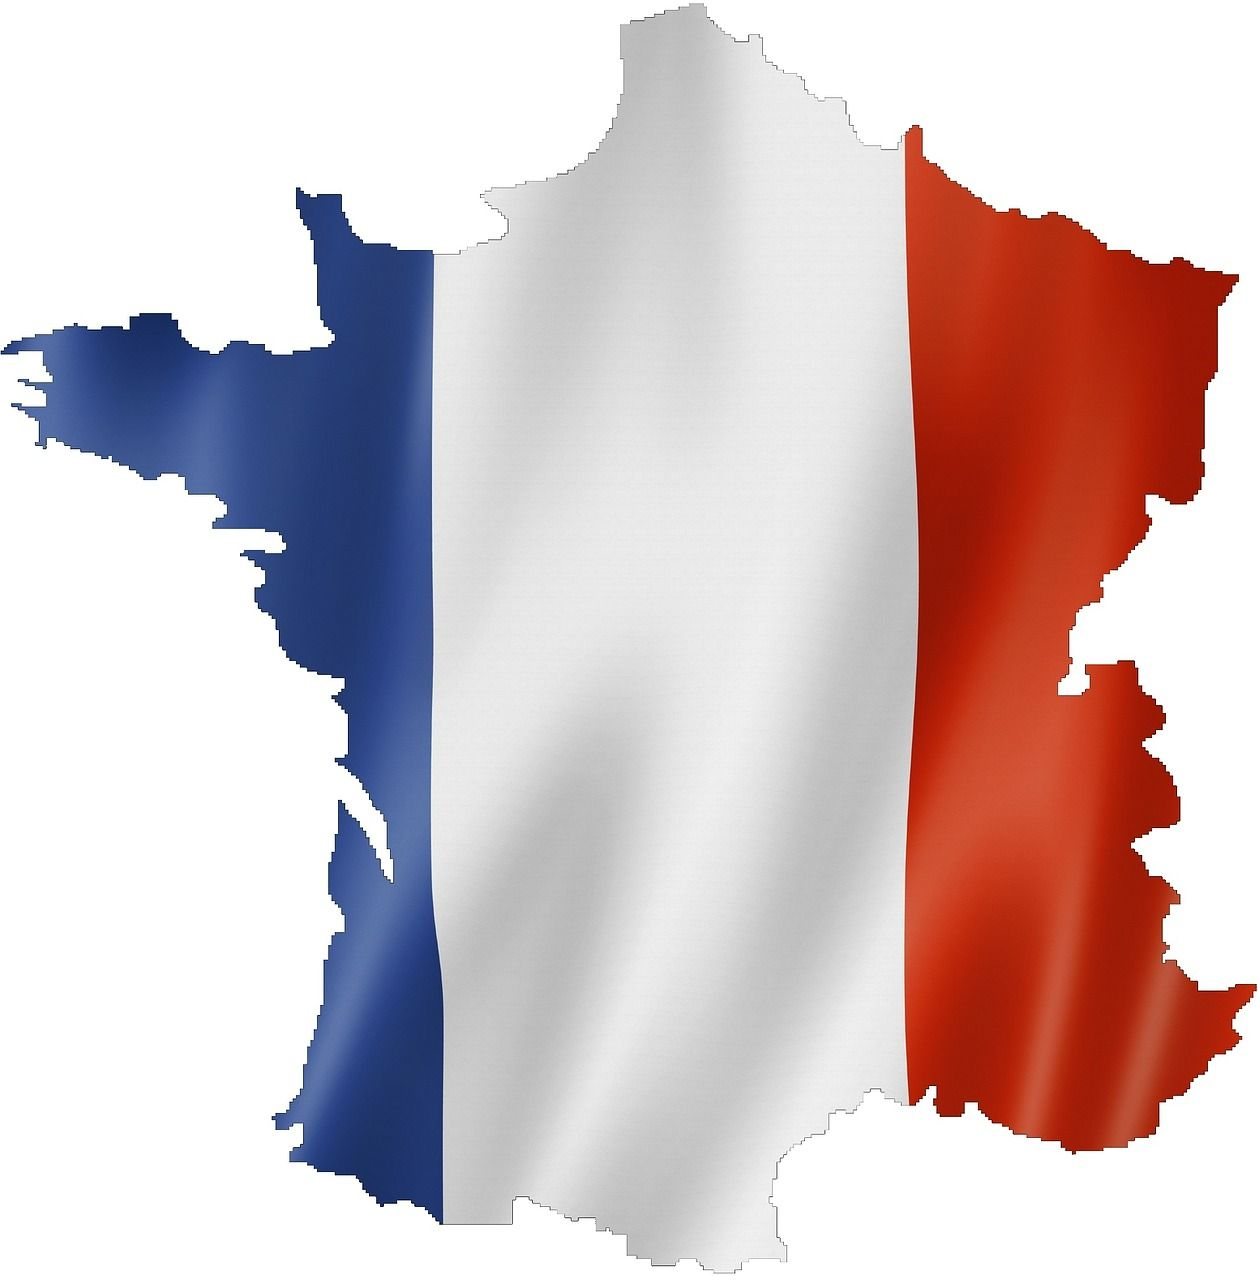 France France Flag Map French Flag French Country France France Flag Map French Flag French Country French Flag Education Fair French Getaway